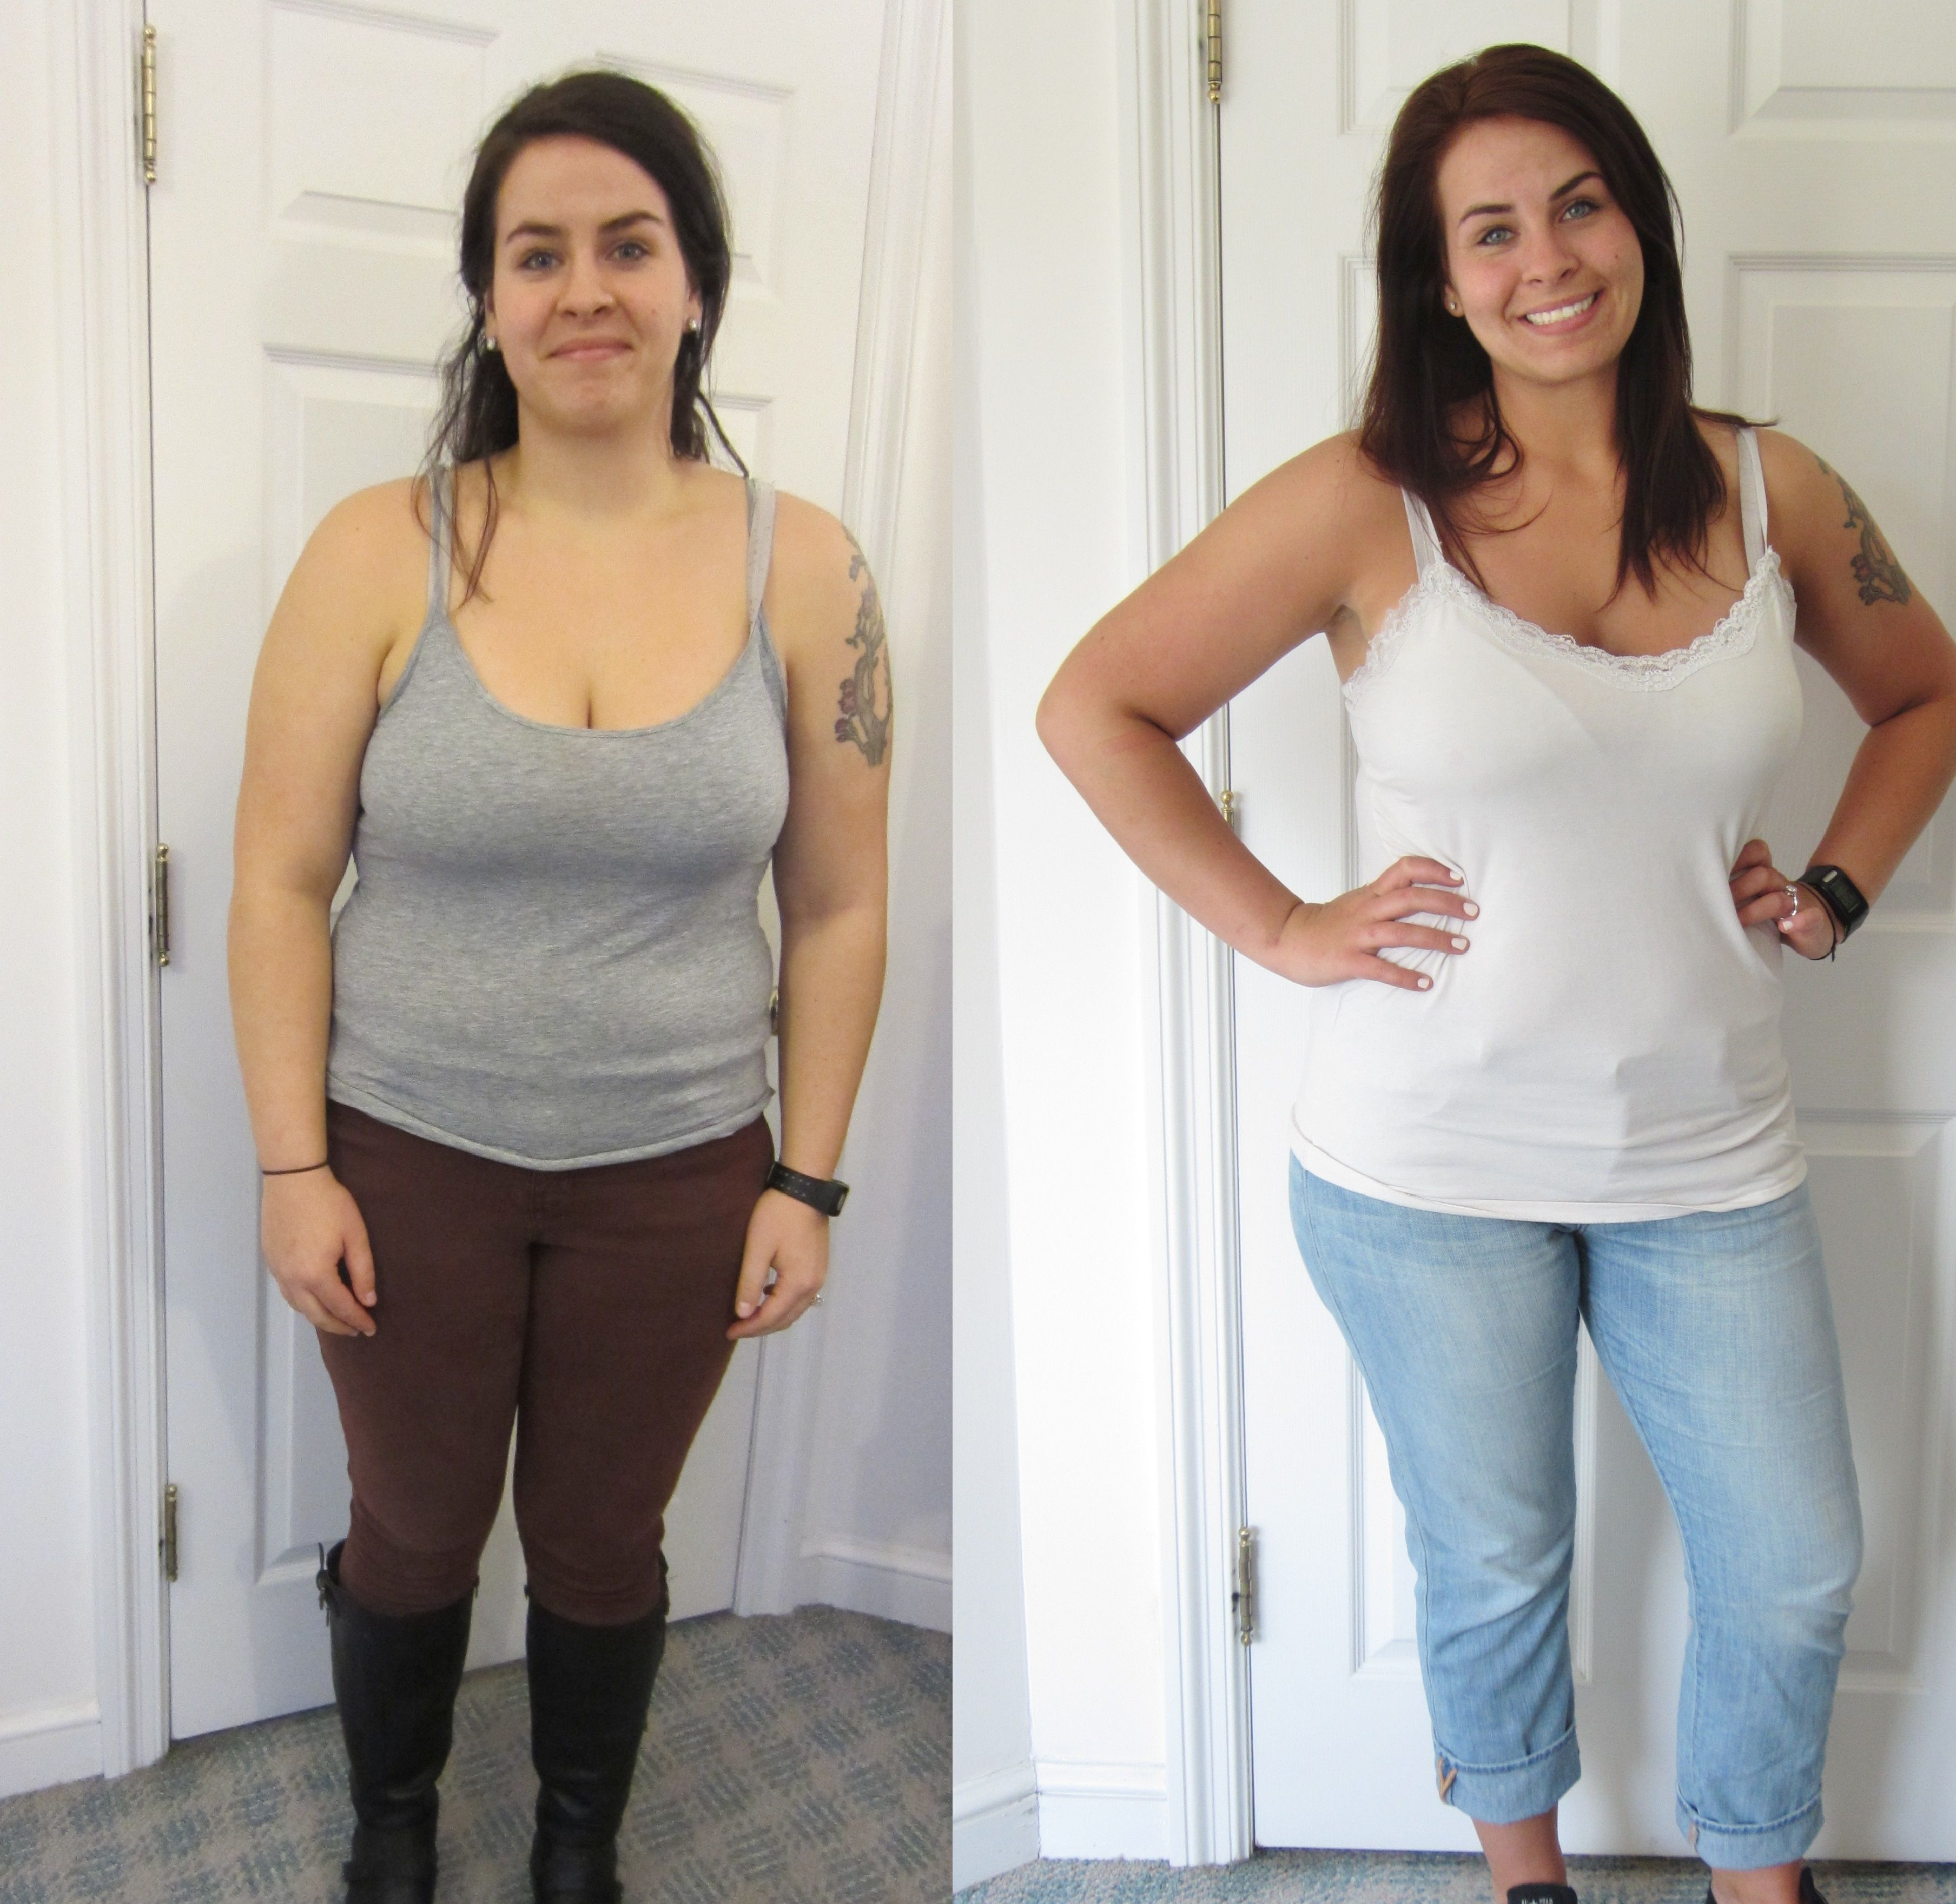 Is insanity asylum good for weight loss